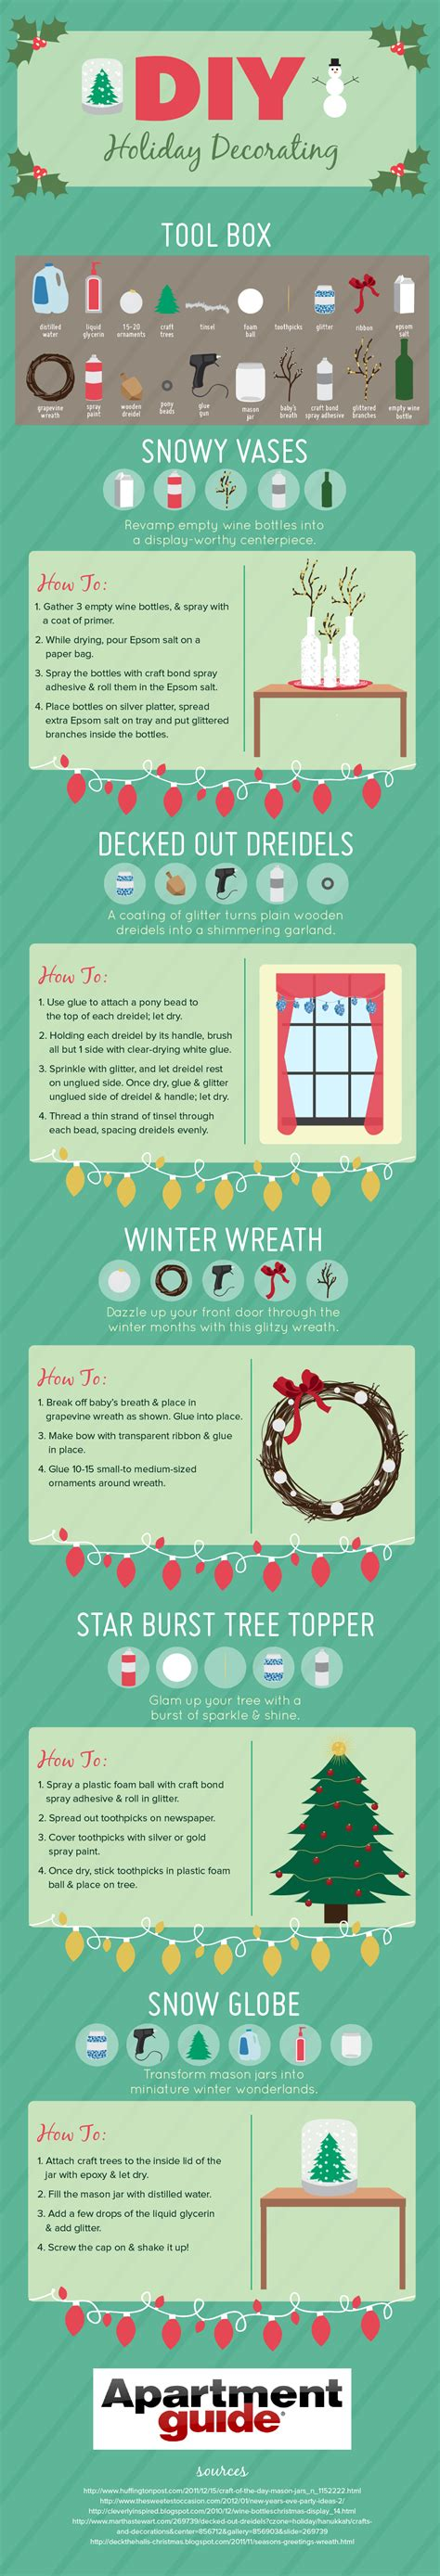 Diy Home Decorations Ideas how to create a diy winter wonderland apartmentguide com